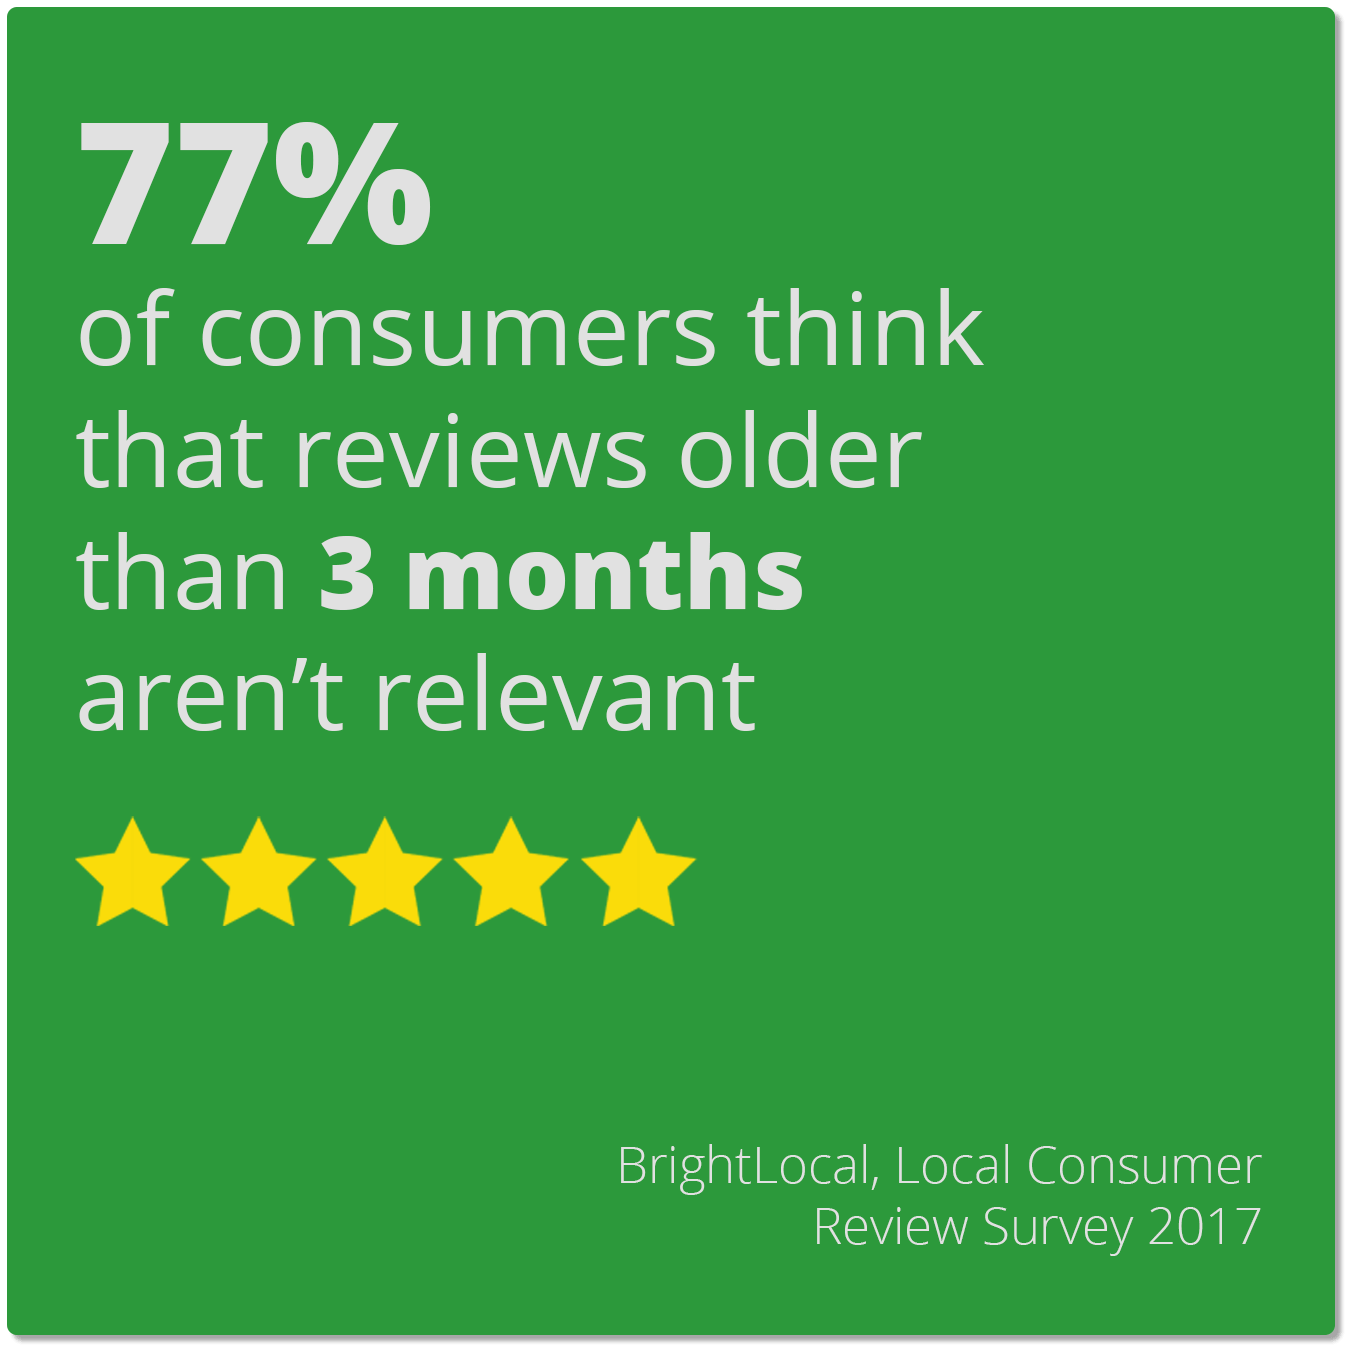 77% of consumers think that reviews older than 3 months aren't relevant